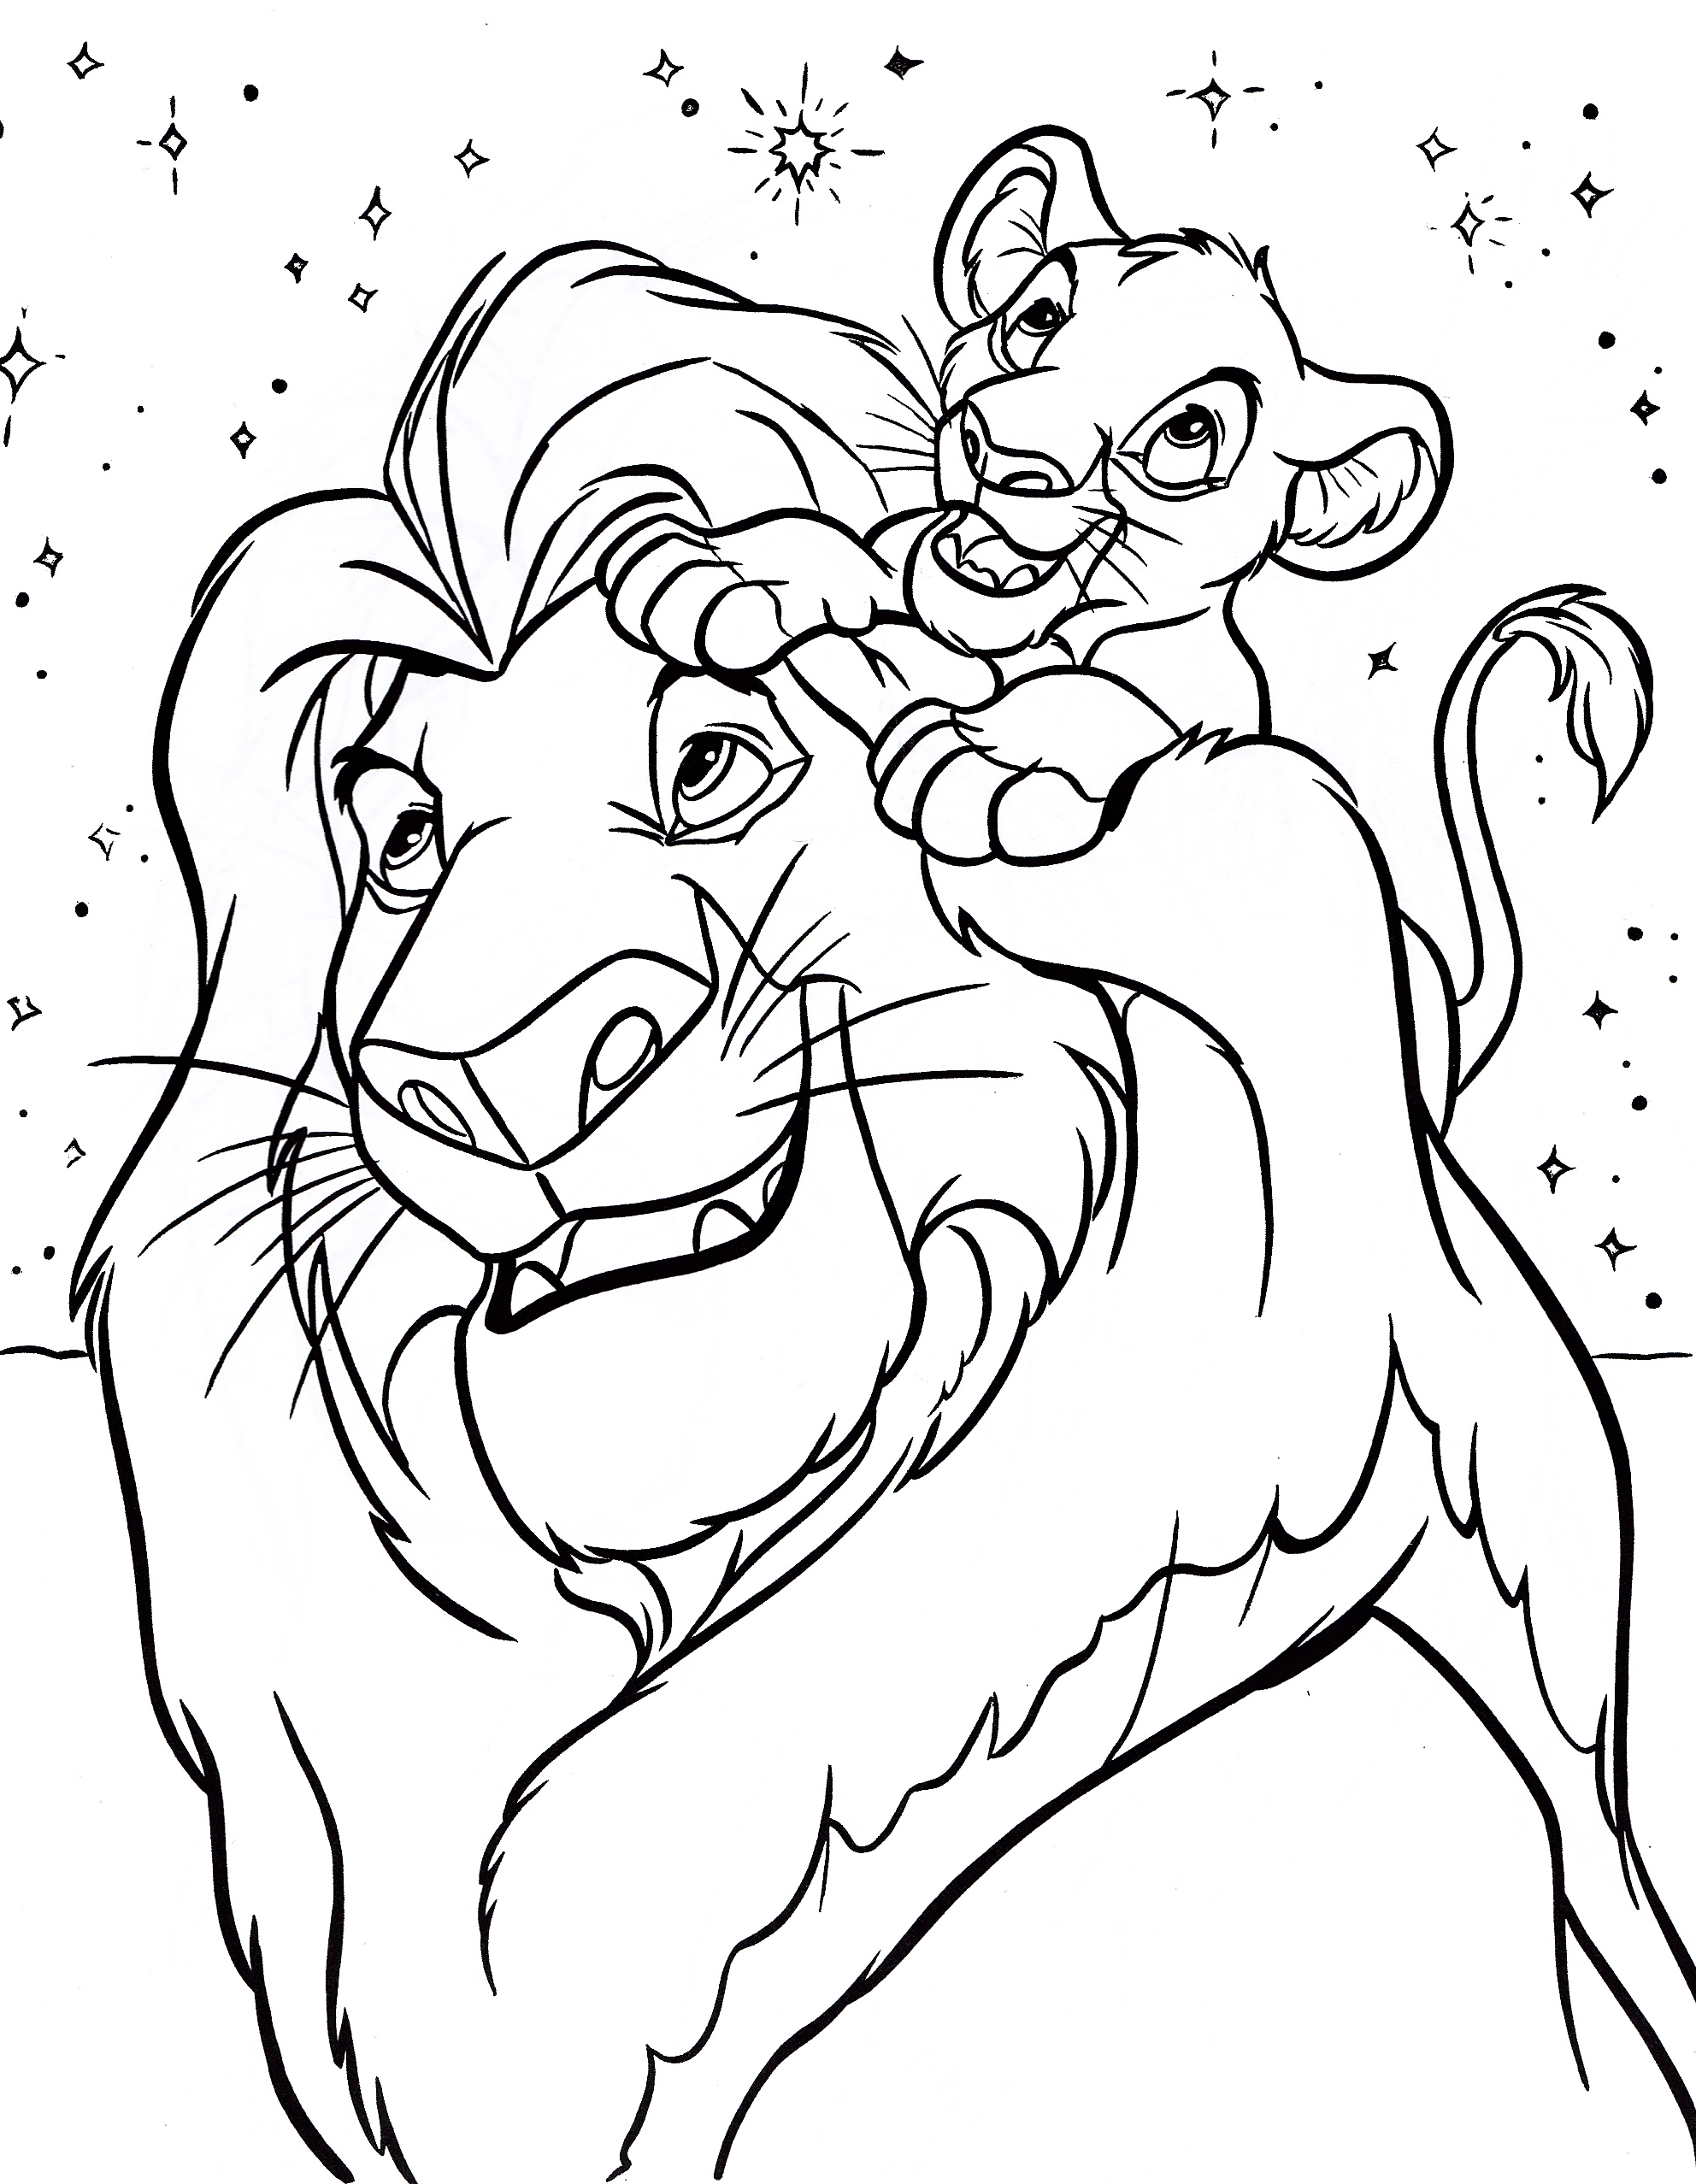 Online coloring pages for children to print - Disney Coloring Pages